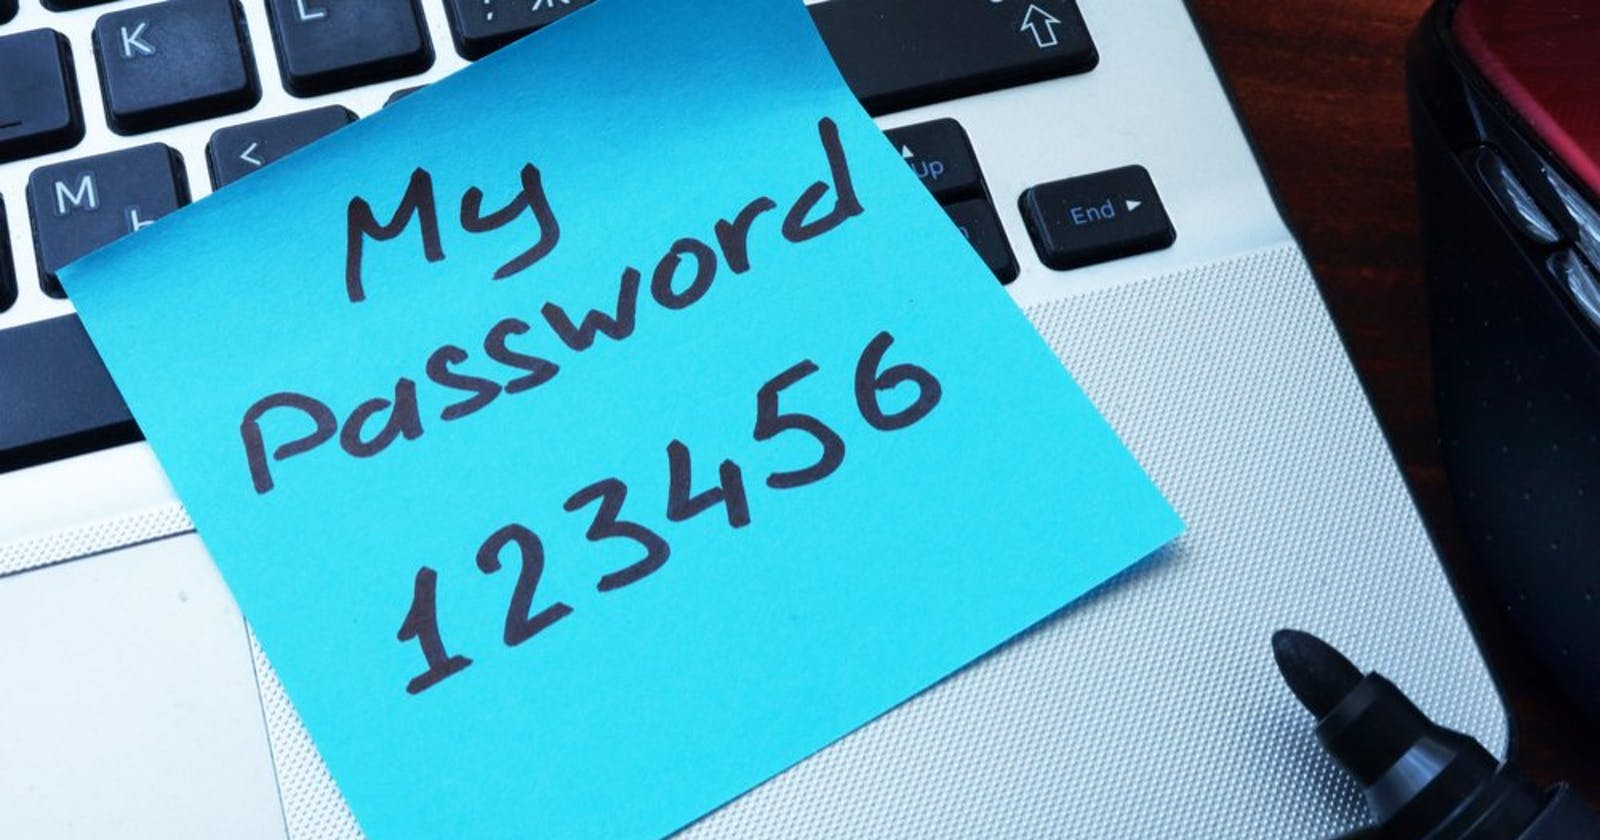 THE BIG PICTURE: Storing User Passwords